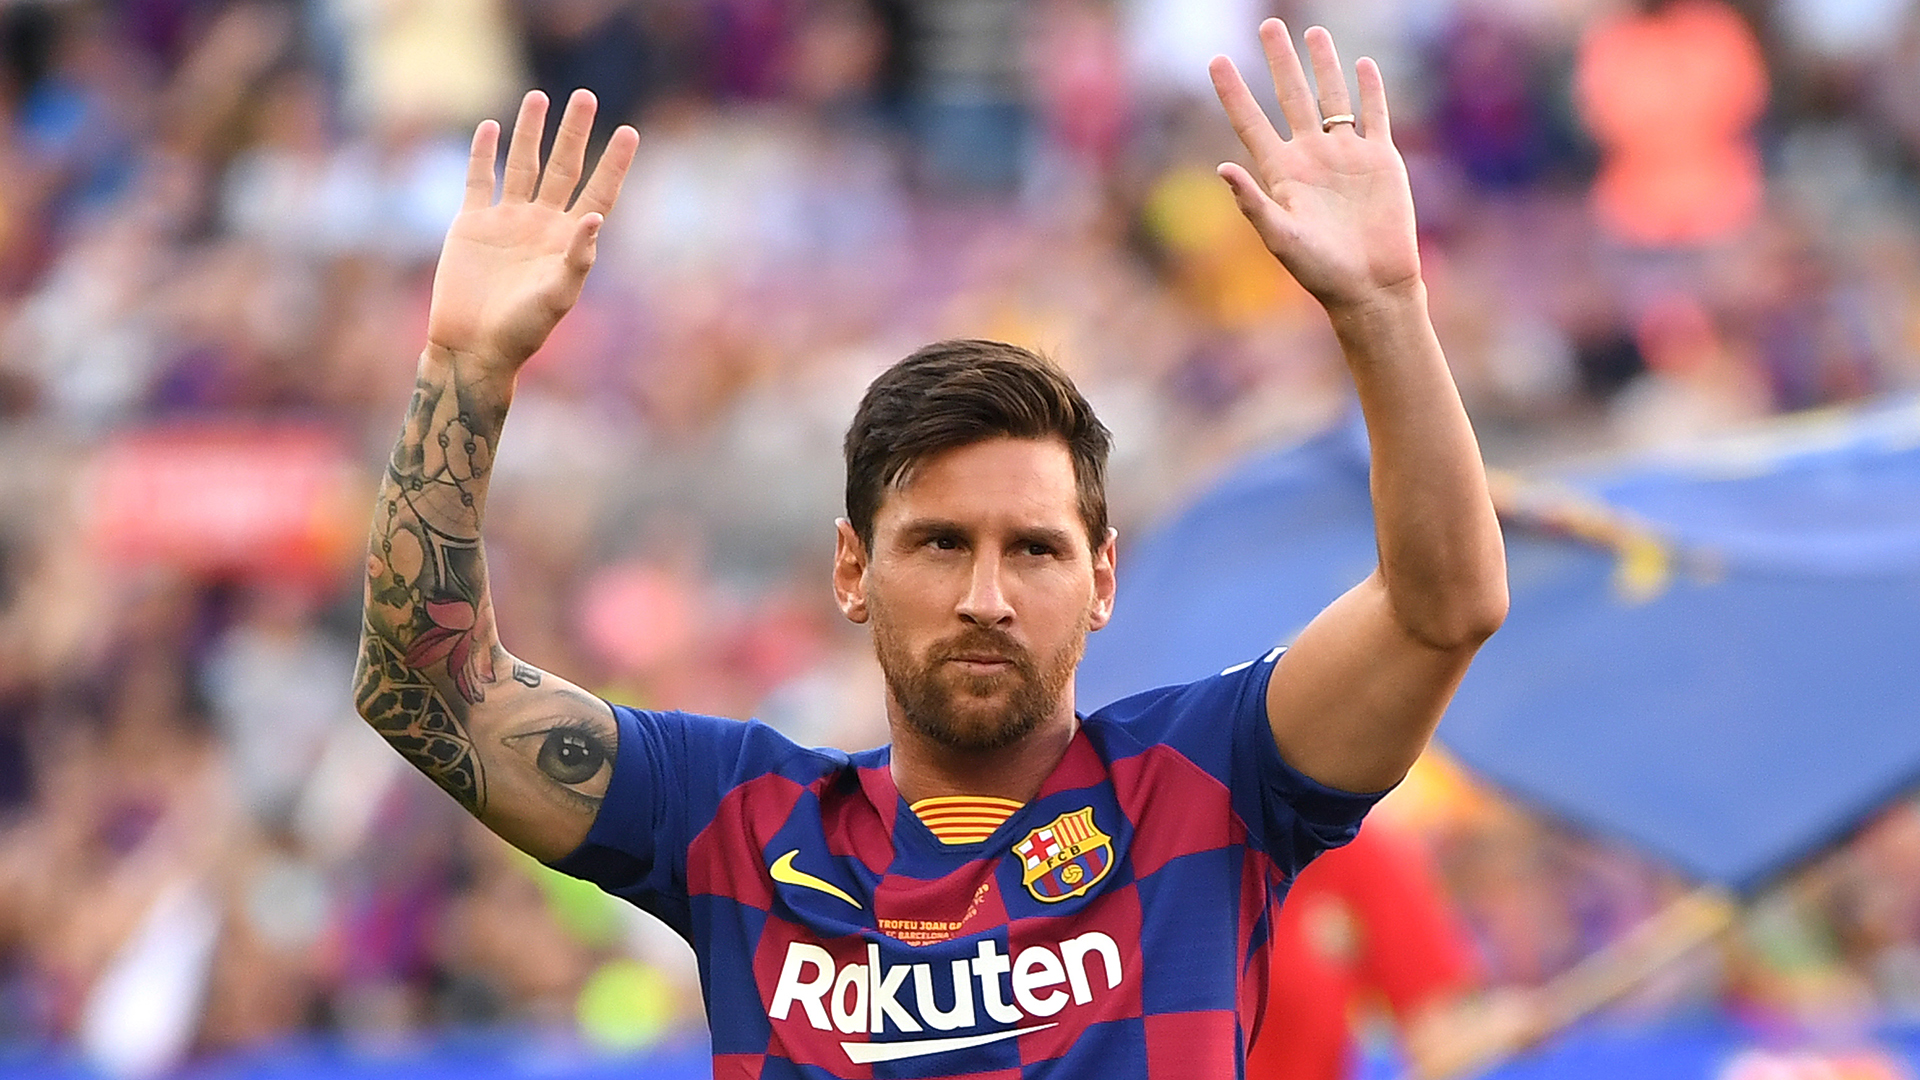 Barcelona ace Messi presented with European Golden Shoe